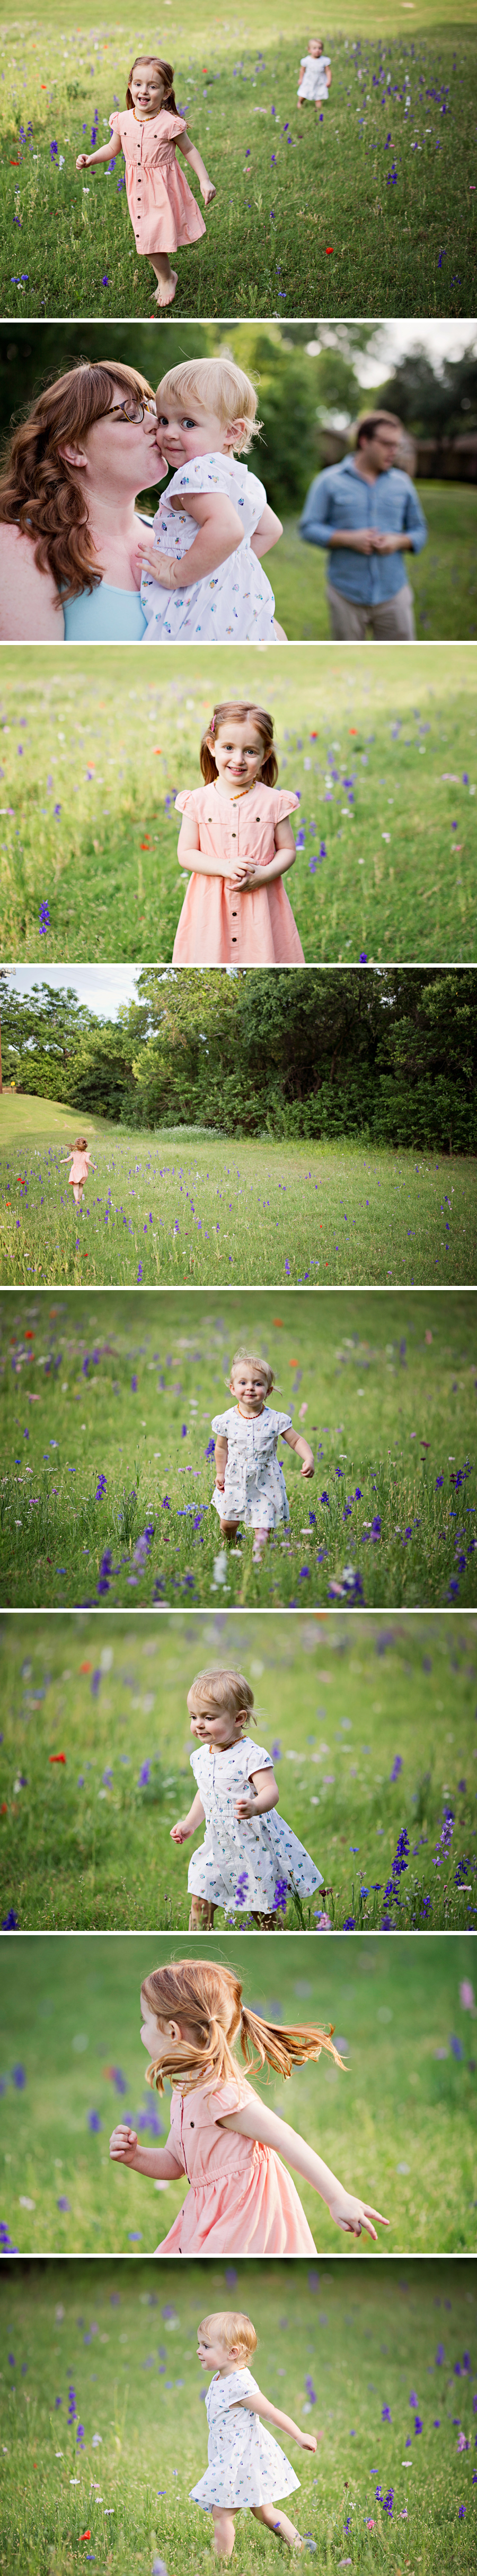 Dallas-Family-Photographer063